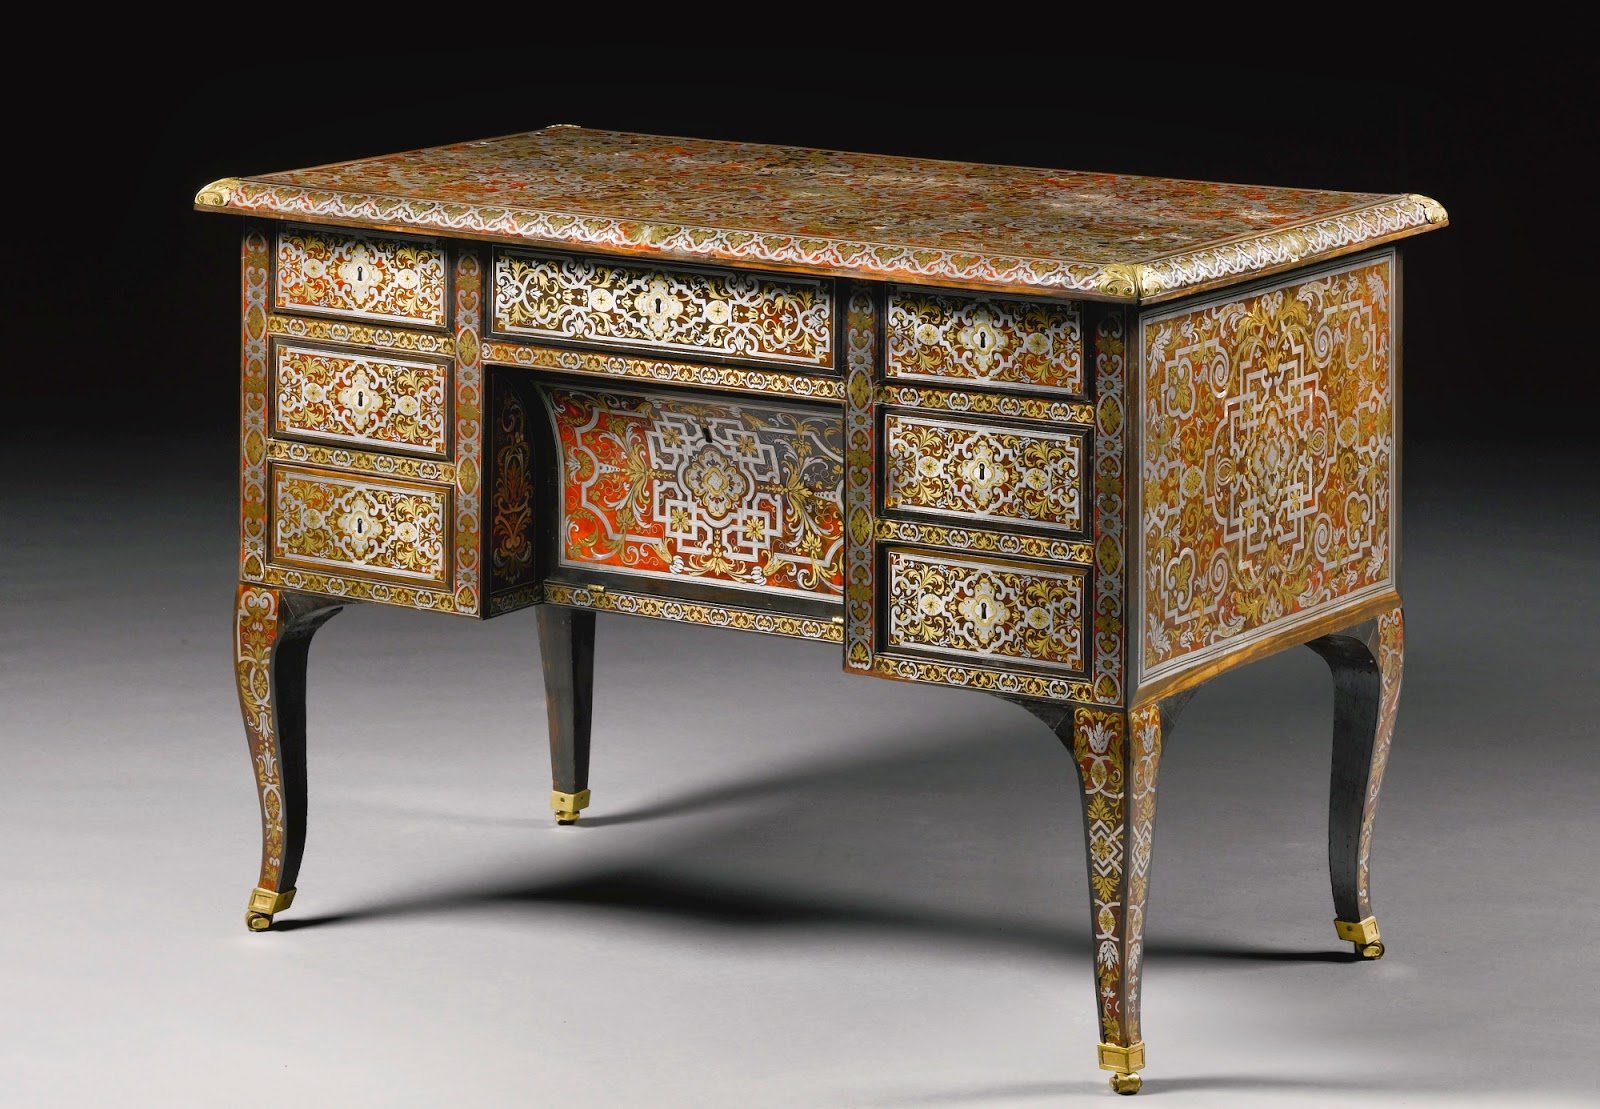 AN ENGRAVED BRASS AND PEWTER INLAID TORTOISESHELL PREMIÈRE-PARTIE BOULLE MARQUETRY AND EBONY BUREAU MAZARIN ATTRIBUTED TO ALEXANDRE-JEAN OPPENORDT (1639-1715) AND STAMPED I DUBOIS (1693-1763), LOUIS XIV, CIRCA 1685, RESTORED BY JACQUES DUBOIS, CIRCA 1750, Sotheby's